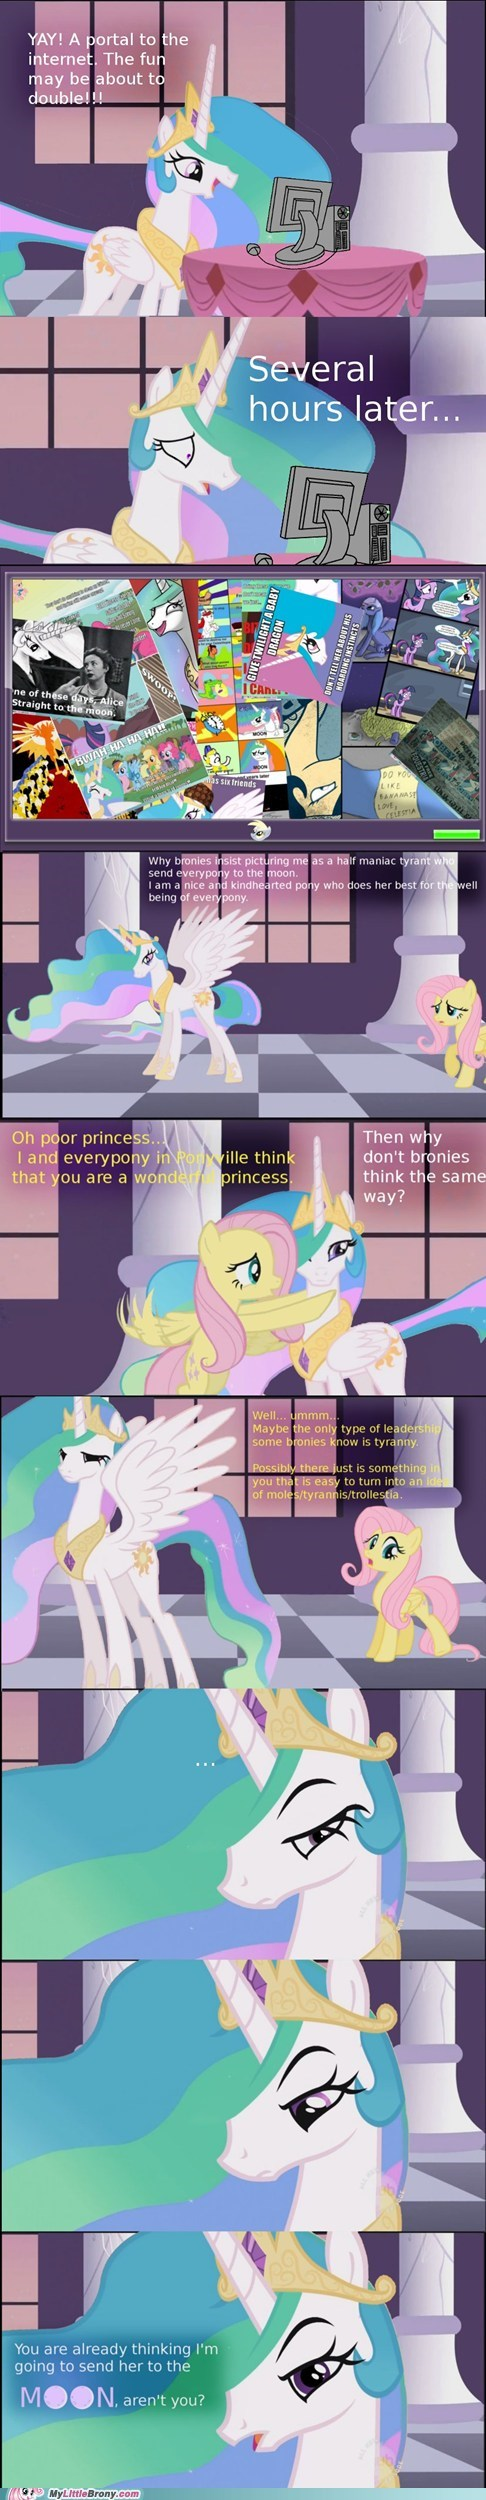 best of week Bronies celestia comic comics lols love and tolerate trollestia - 5636167680